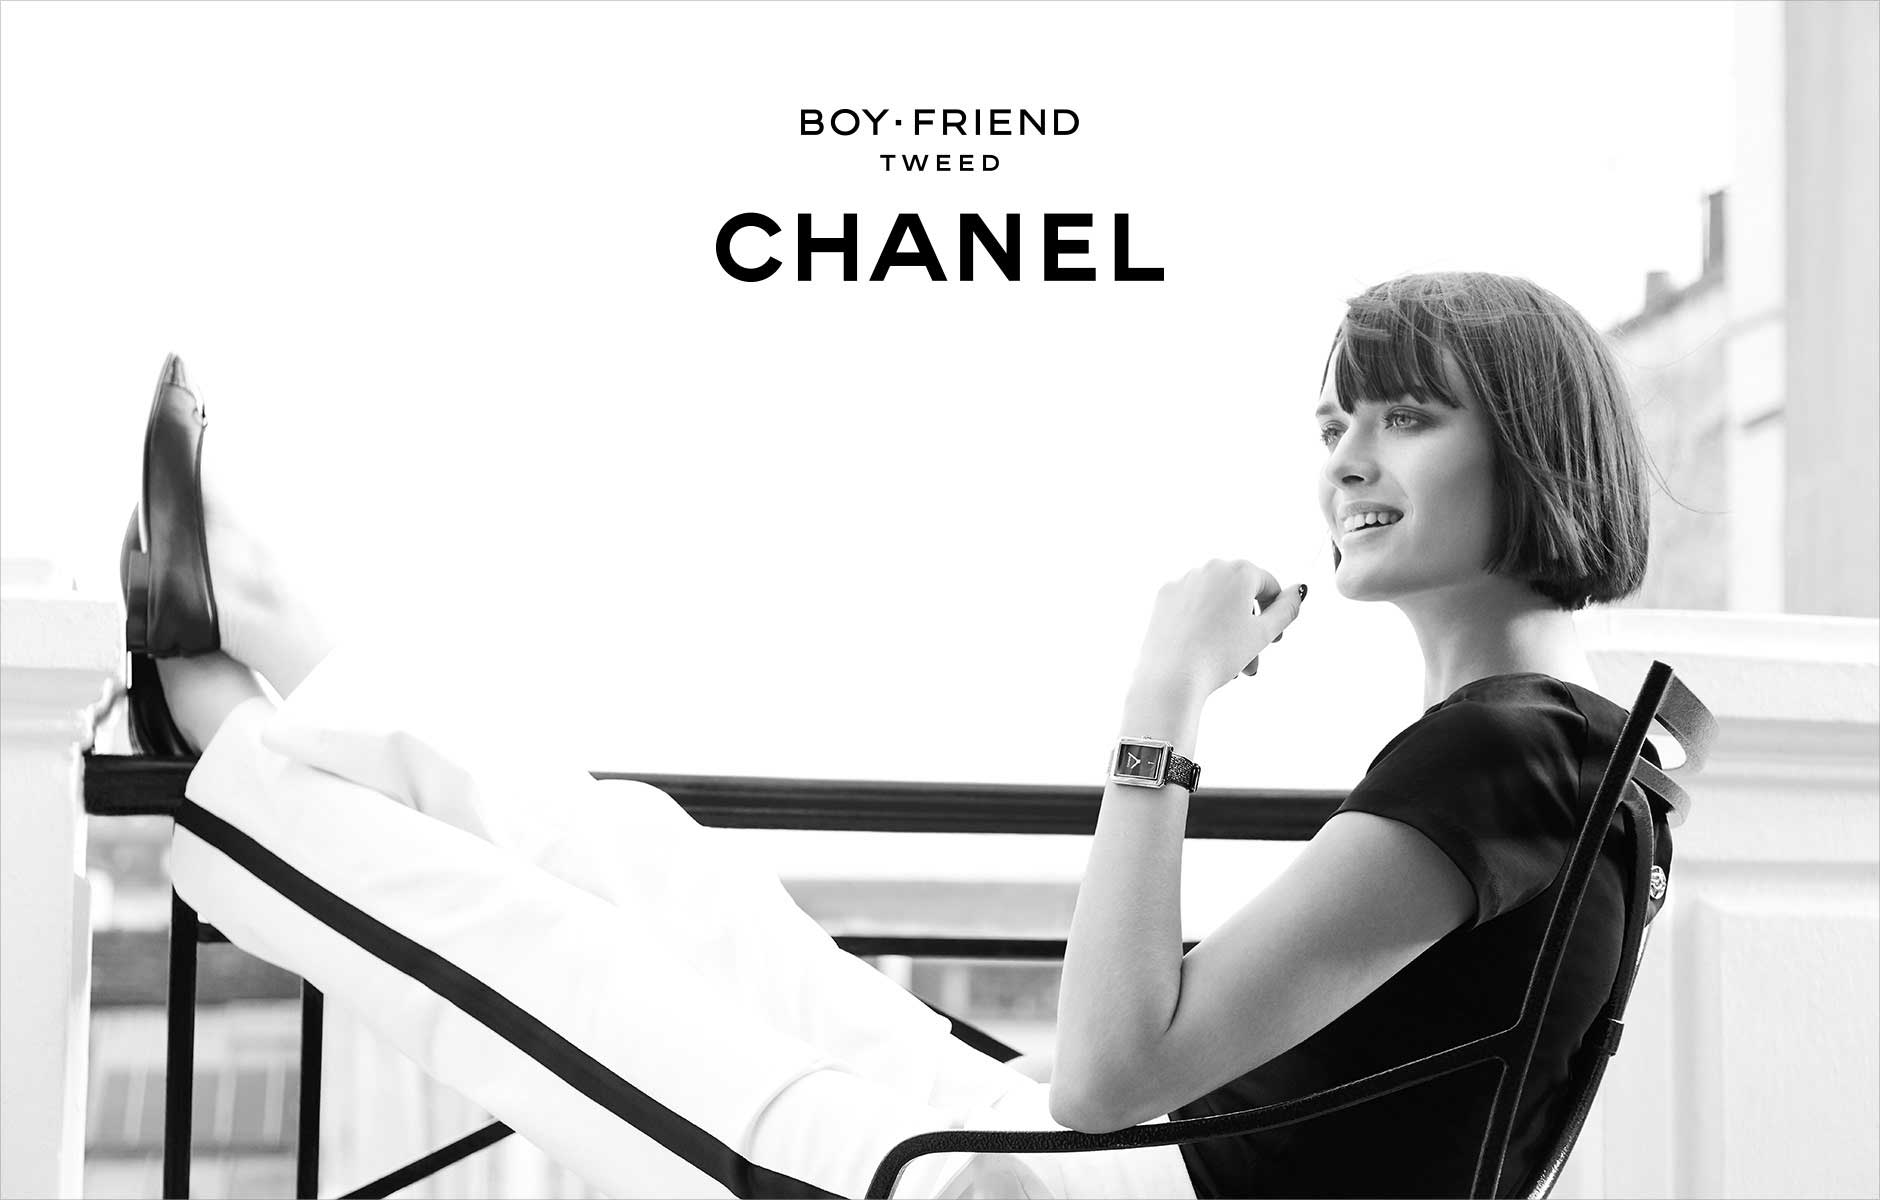 Chanel: Boy-Friend - Tweed